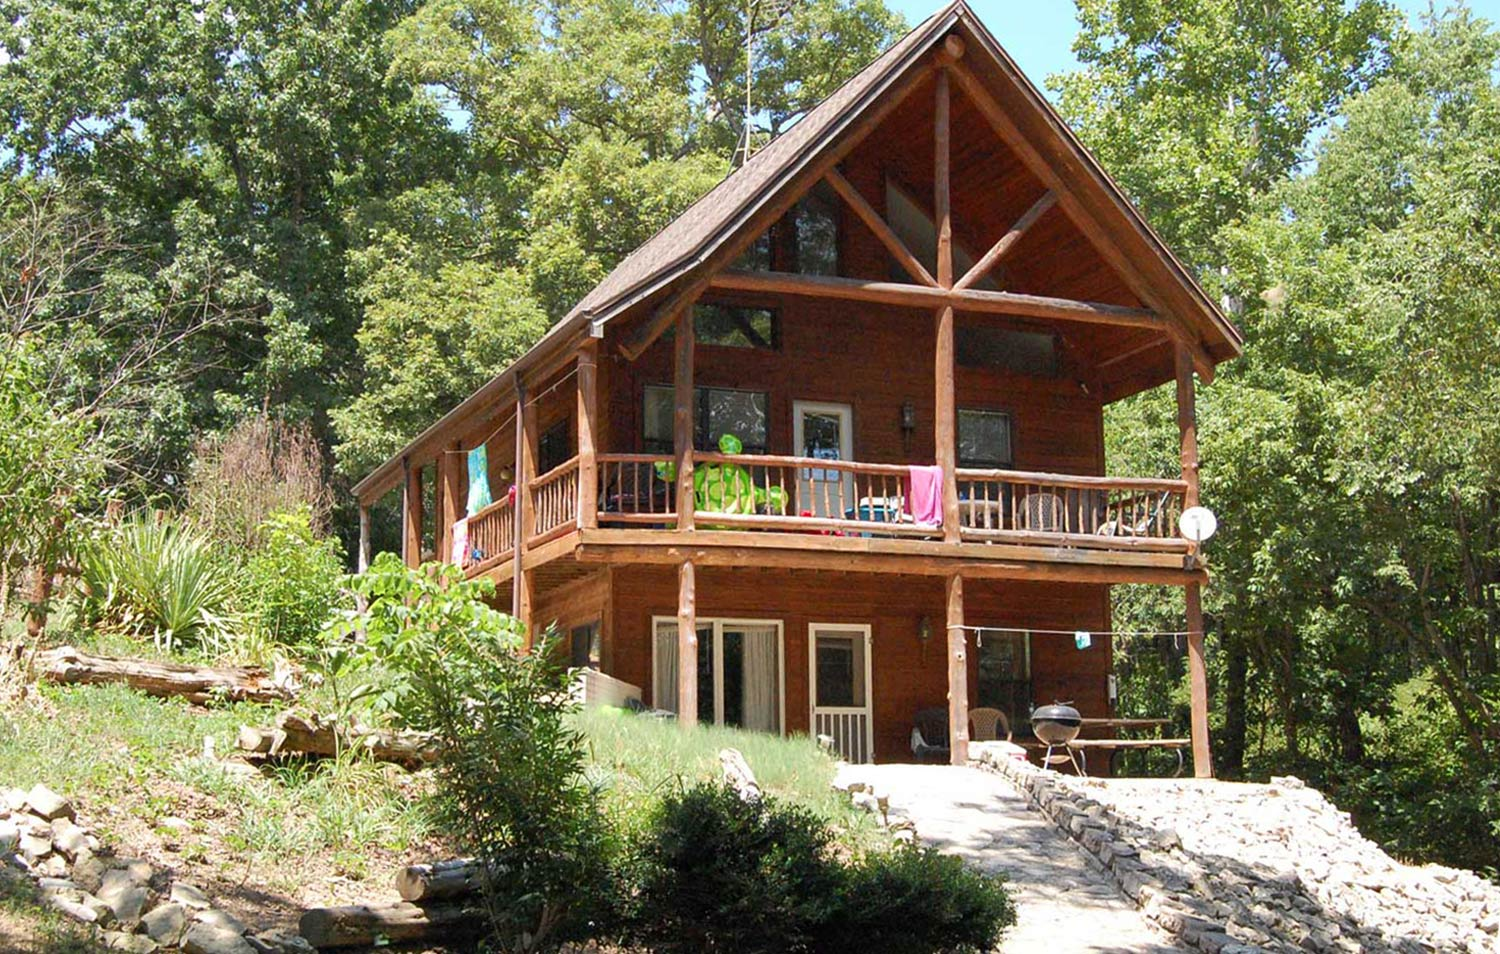 Table rock lake hickory hollow resort-cabin 9C-2019